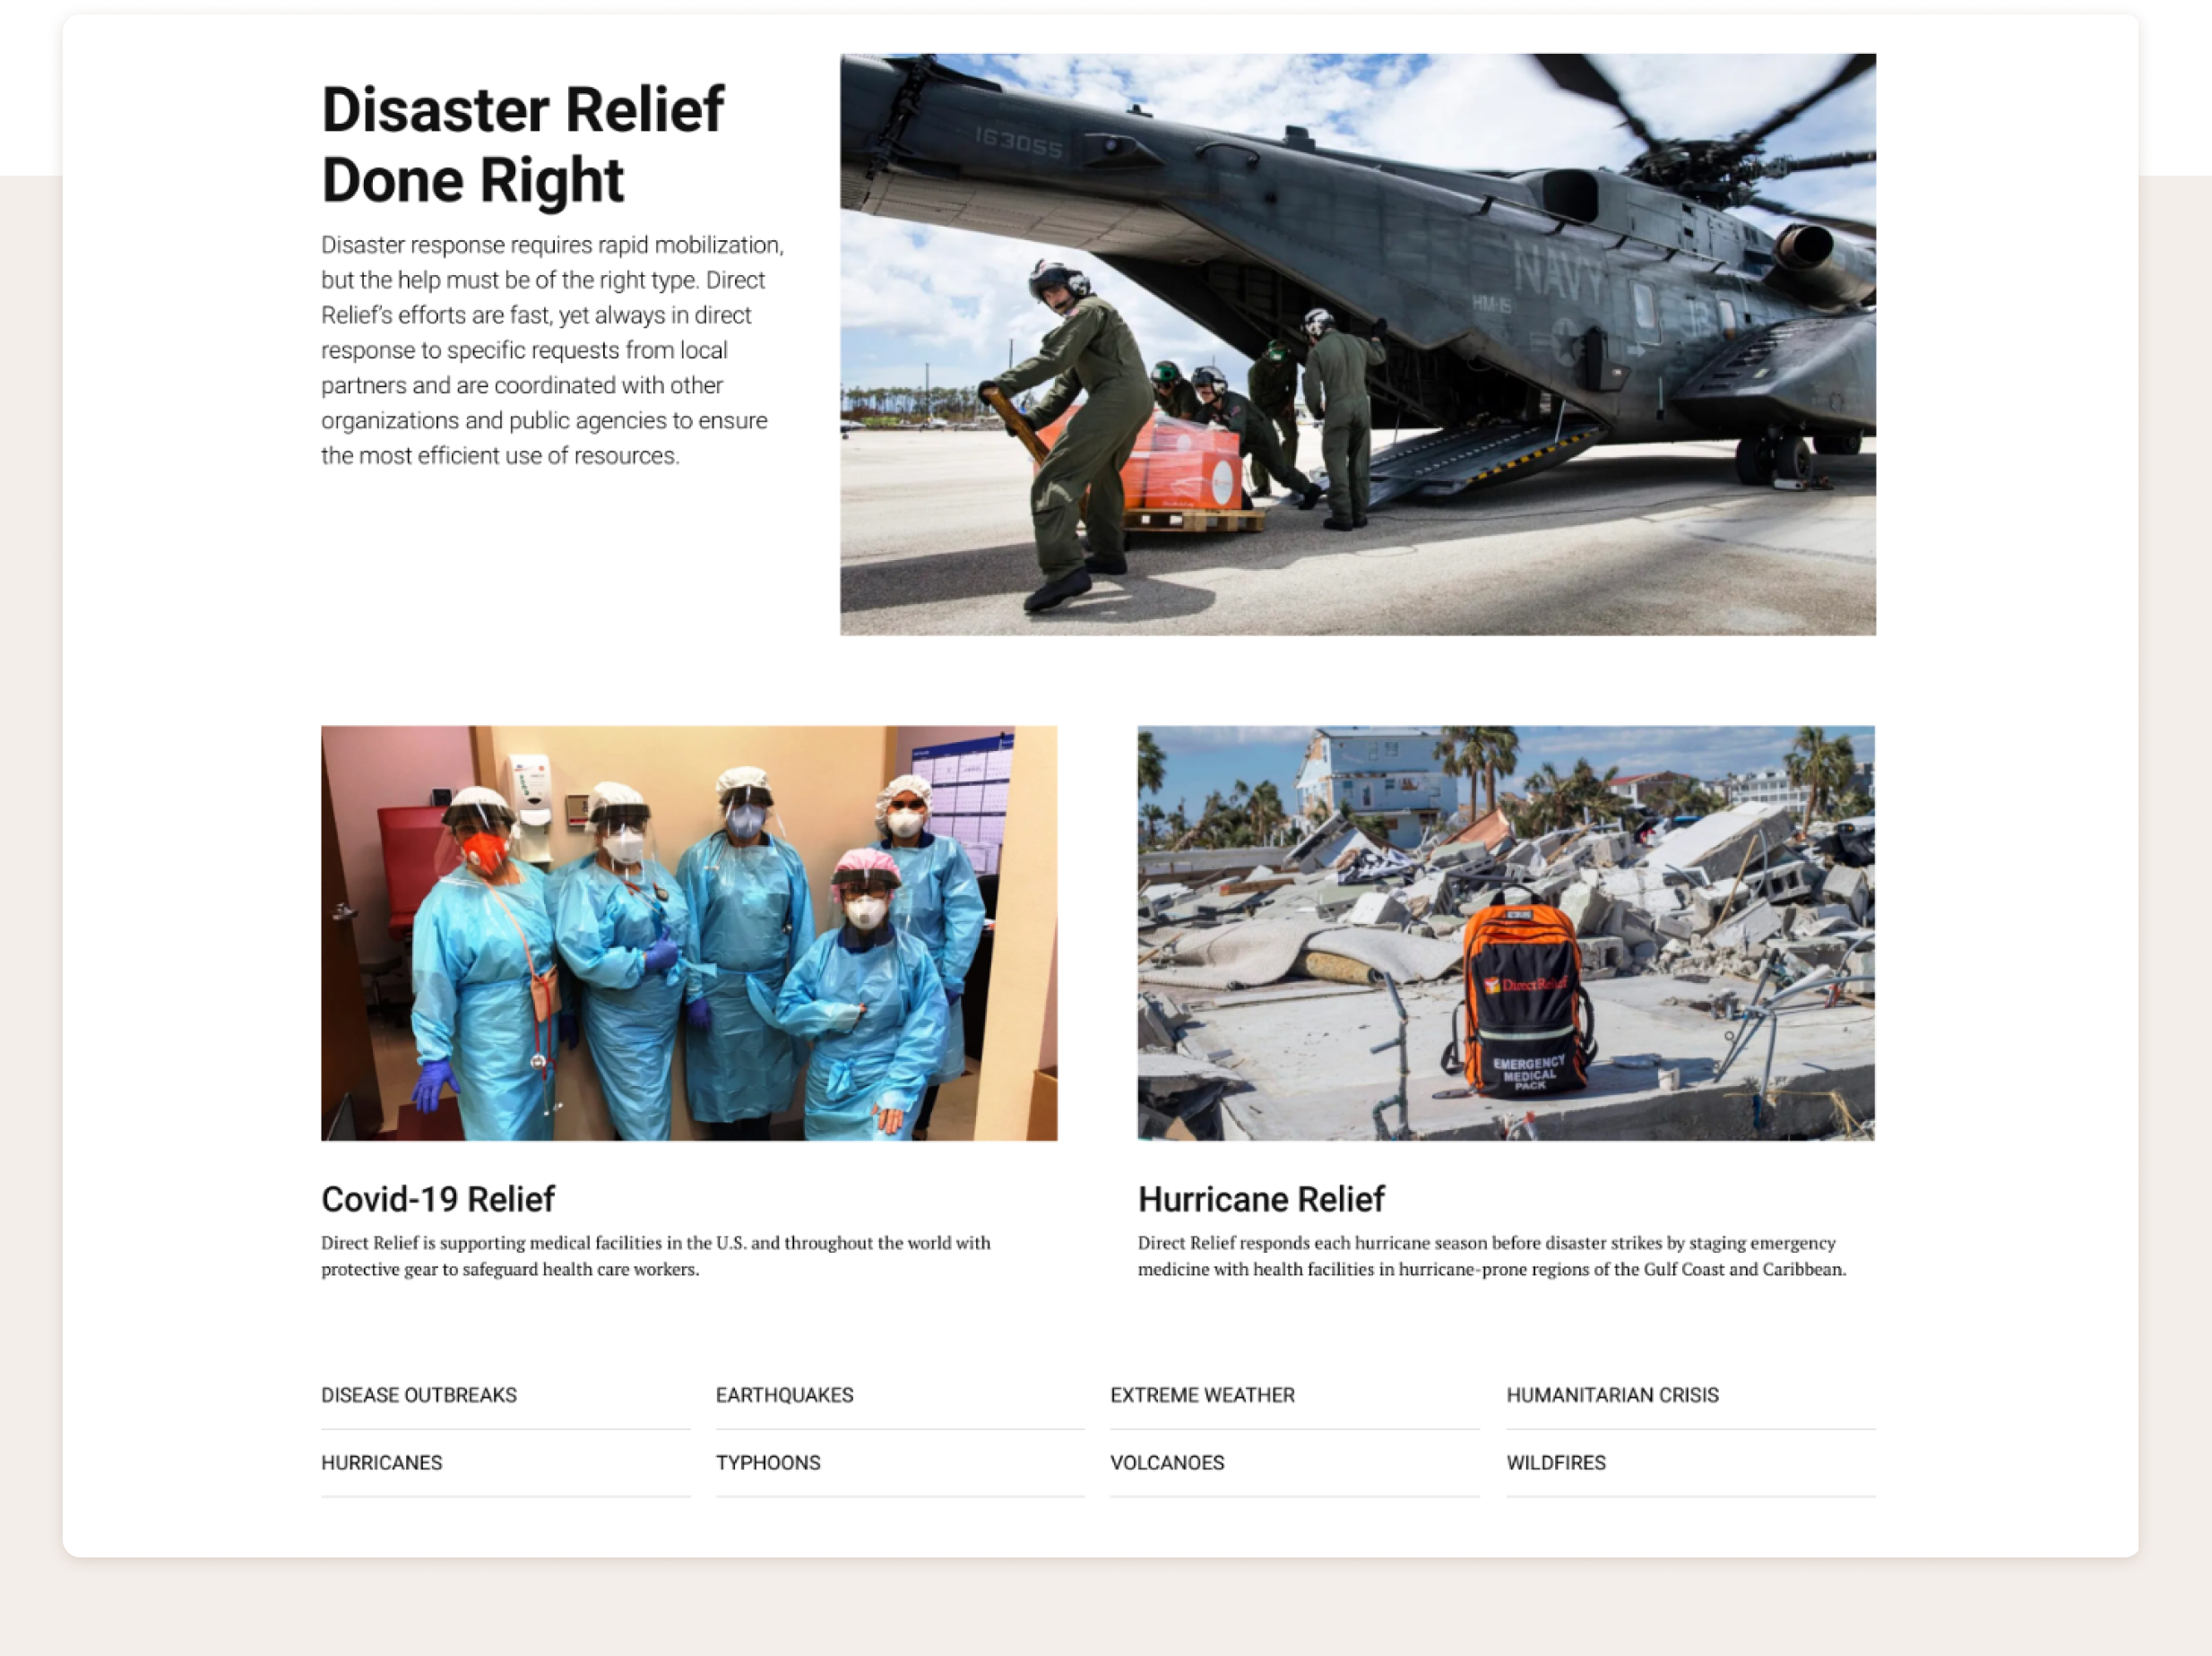 Three articles on the Direct Relief page, each with a large image, a bold headline, and a brief paragraph or sentence of information